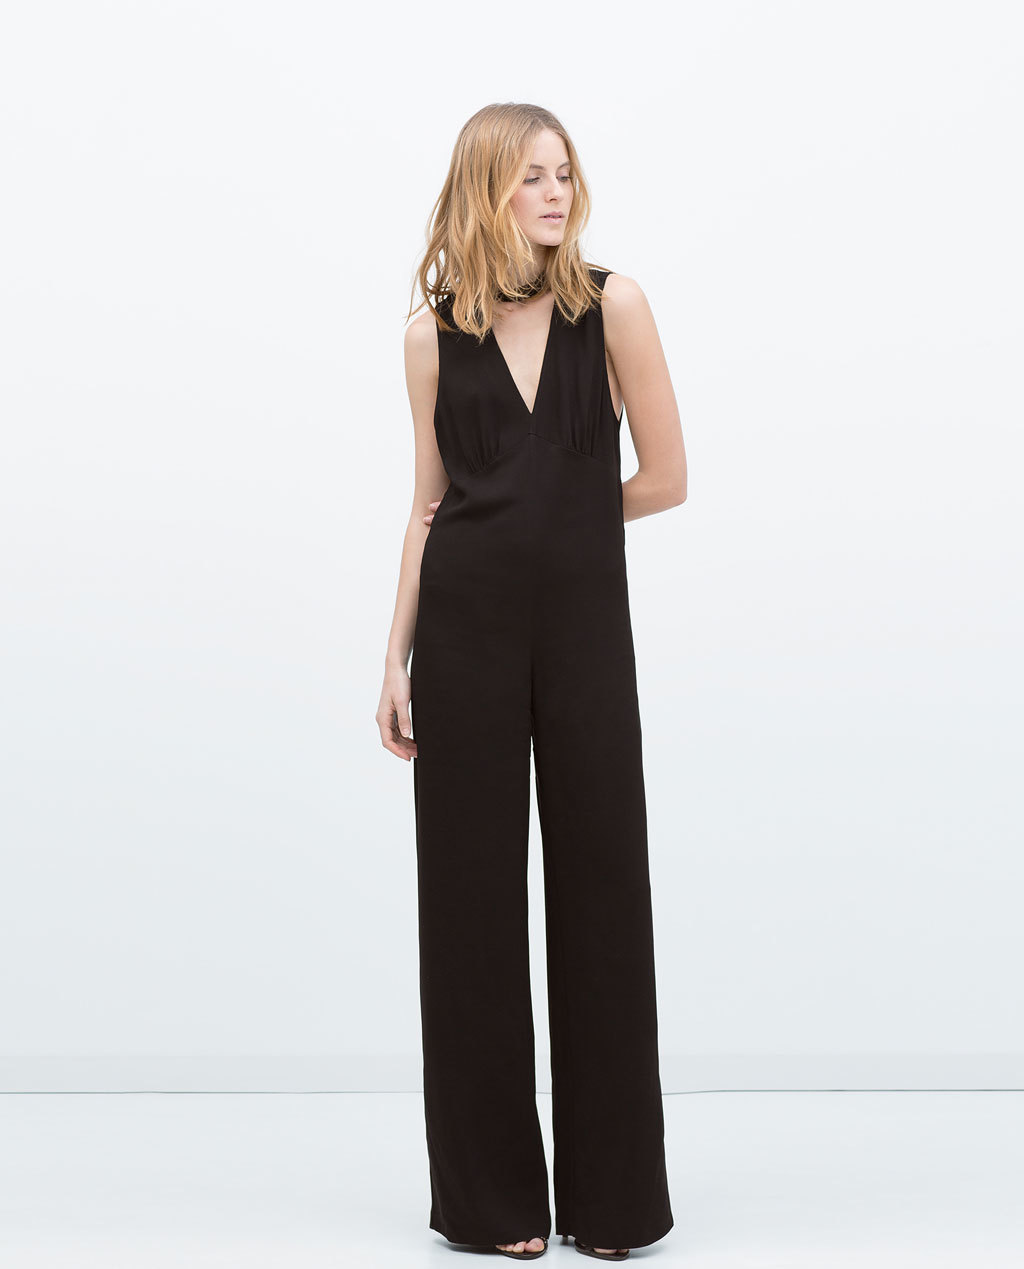 High Neck Collar Jumpsuit - length: standard; neckline: low v-neck; pattern: plain; sleeve style: sleeveless; predominant colour: black; occasions: evening; fit: body skimming; fibres: viscose/rayon - stretch; sleeve length: sleeveless; style: jumpsuit; texture group: woven light midweight; season: s/s 2015; wardrobe: event